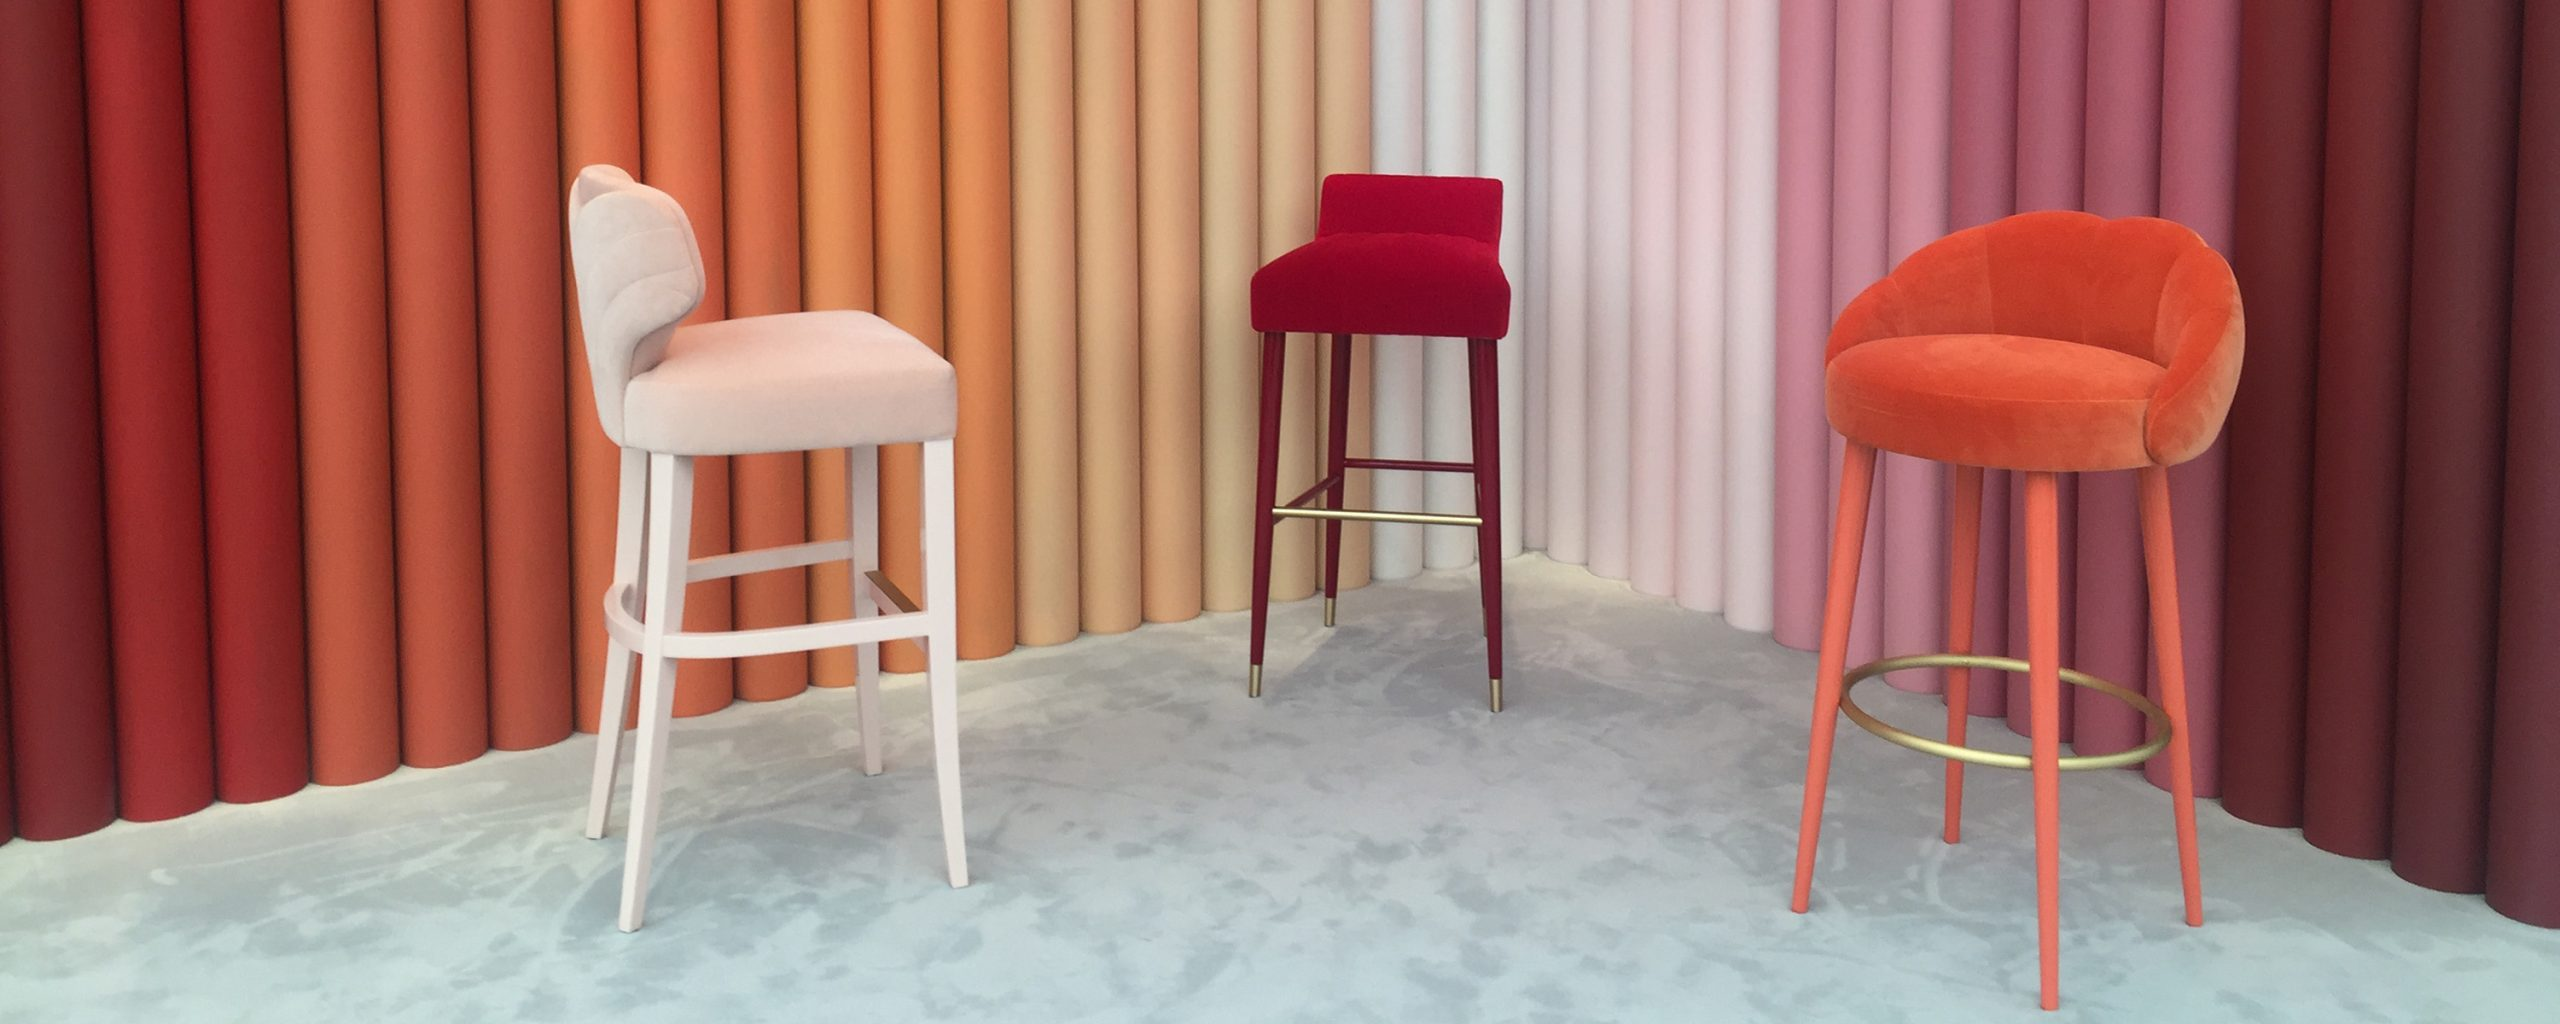 INTERIOR DESIGN TREND REPORT FROM DECOREX 2018